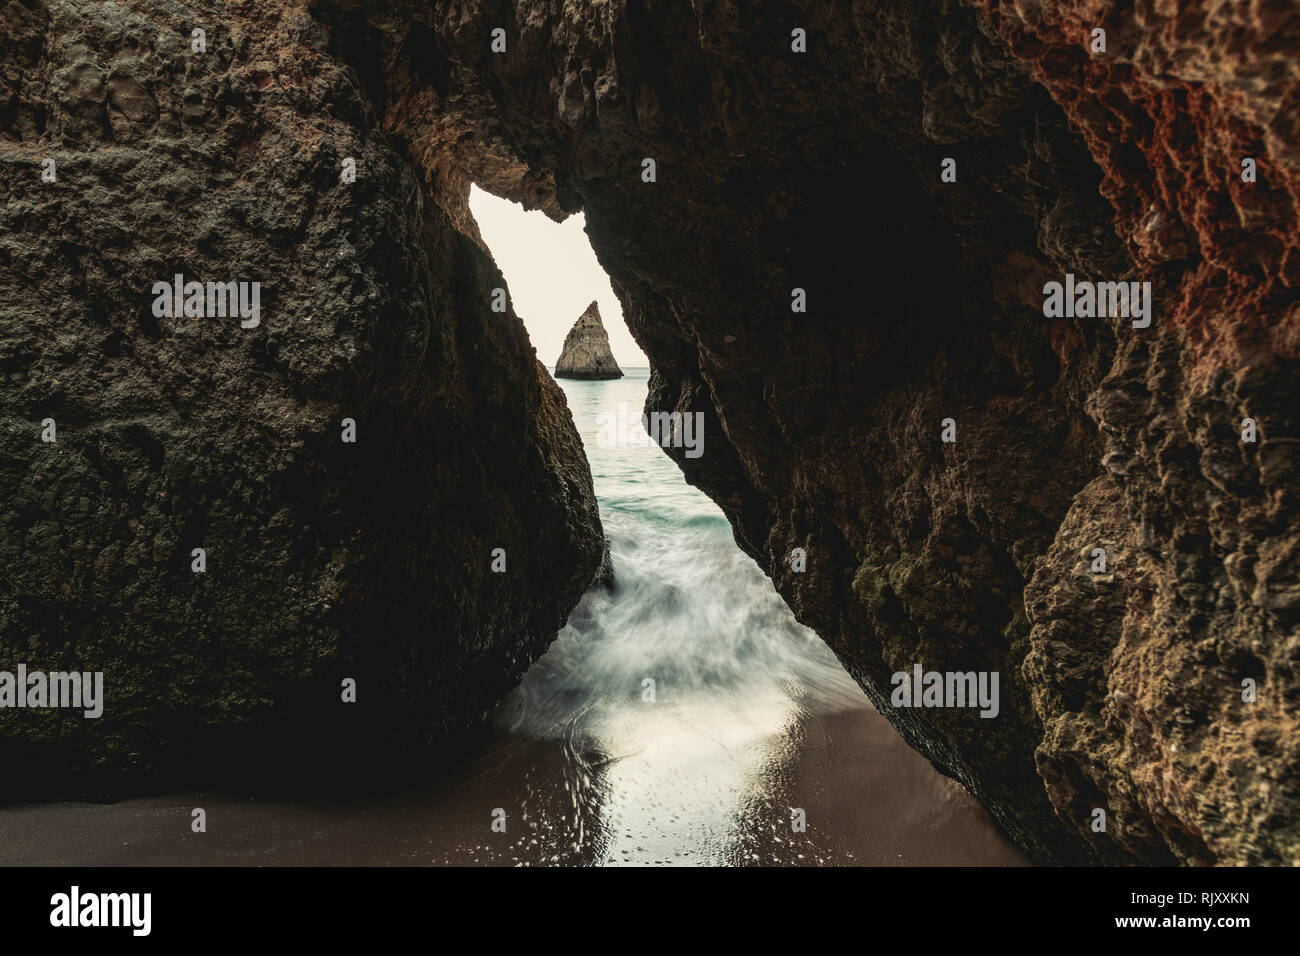 Looking through opening in cliff at pointy rock formation in distance, time lapse, Alvor, Algarve, Portugal, Europe - Stock Image